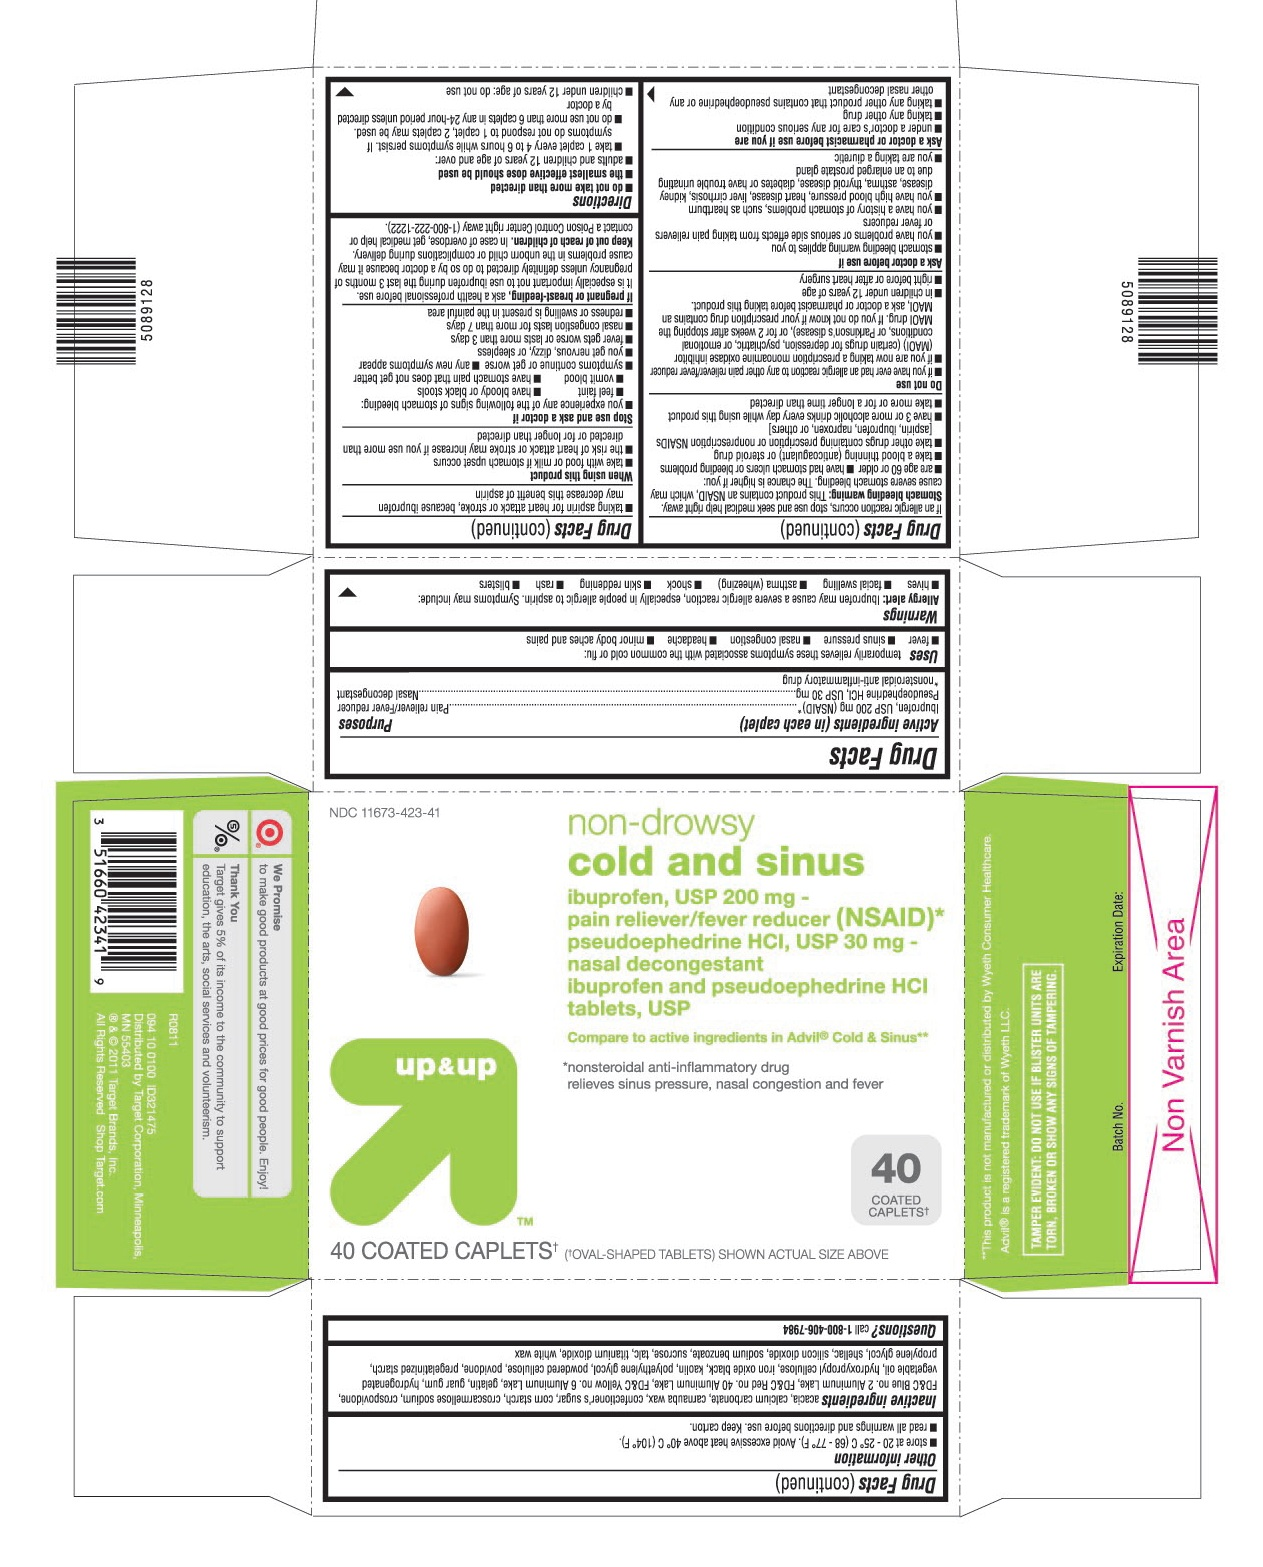 This is the 40 count blister carton label for Target Ibuprofen and Pseudoephedrine HCl tablets, USP.